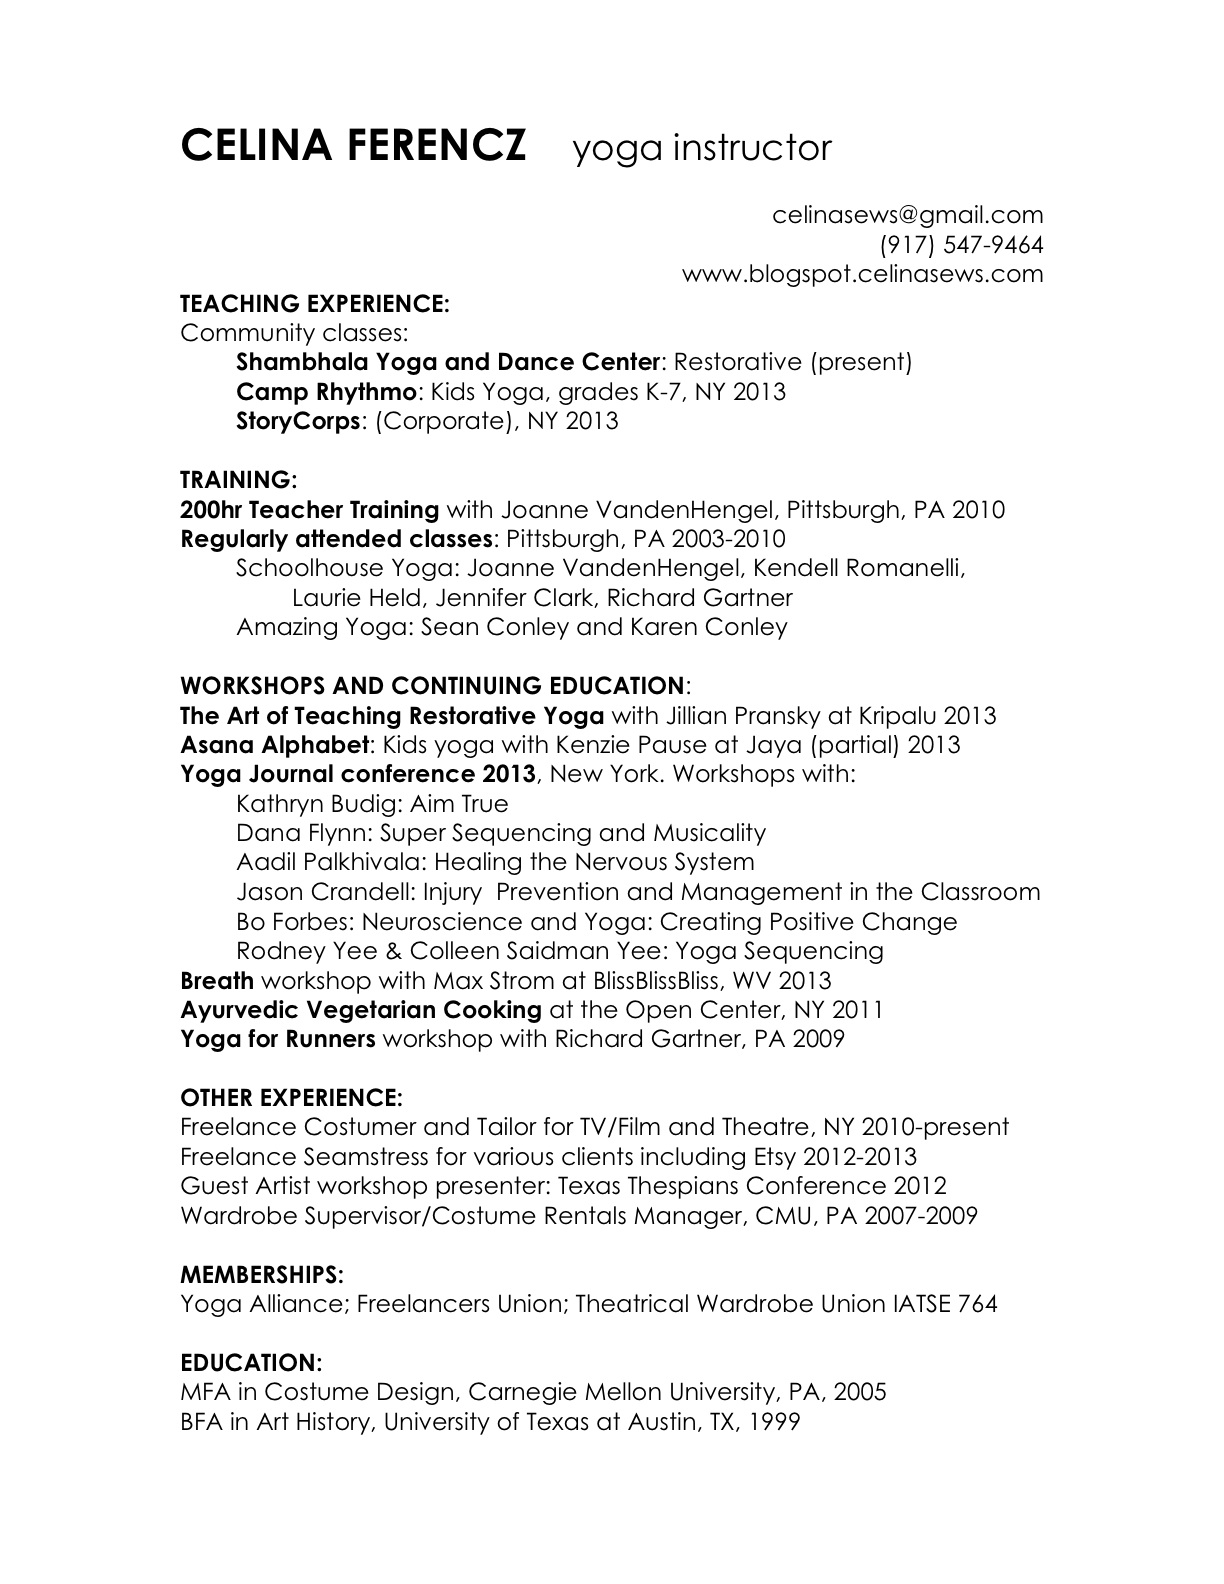 nurse resume qualities resume writing example nurse resume qualities 7 examples of registered nurse resume objective job how to put certifications on